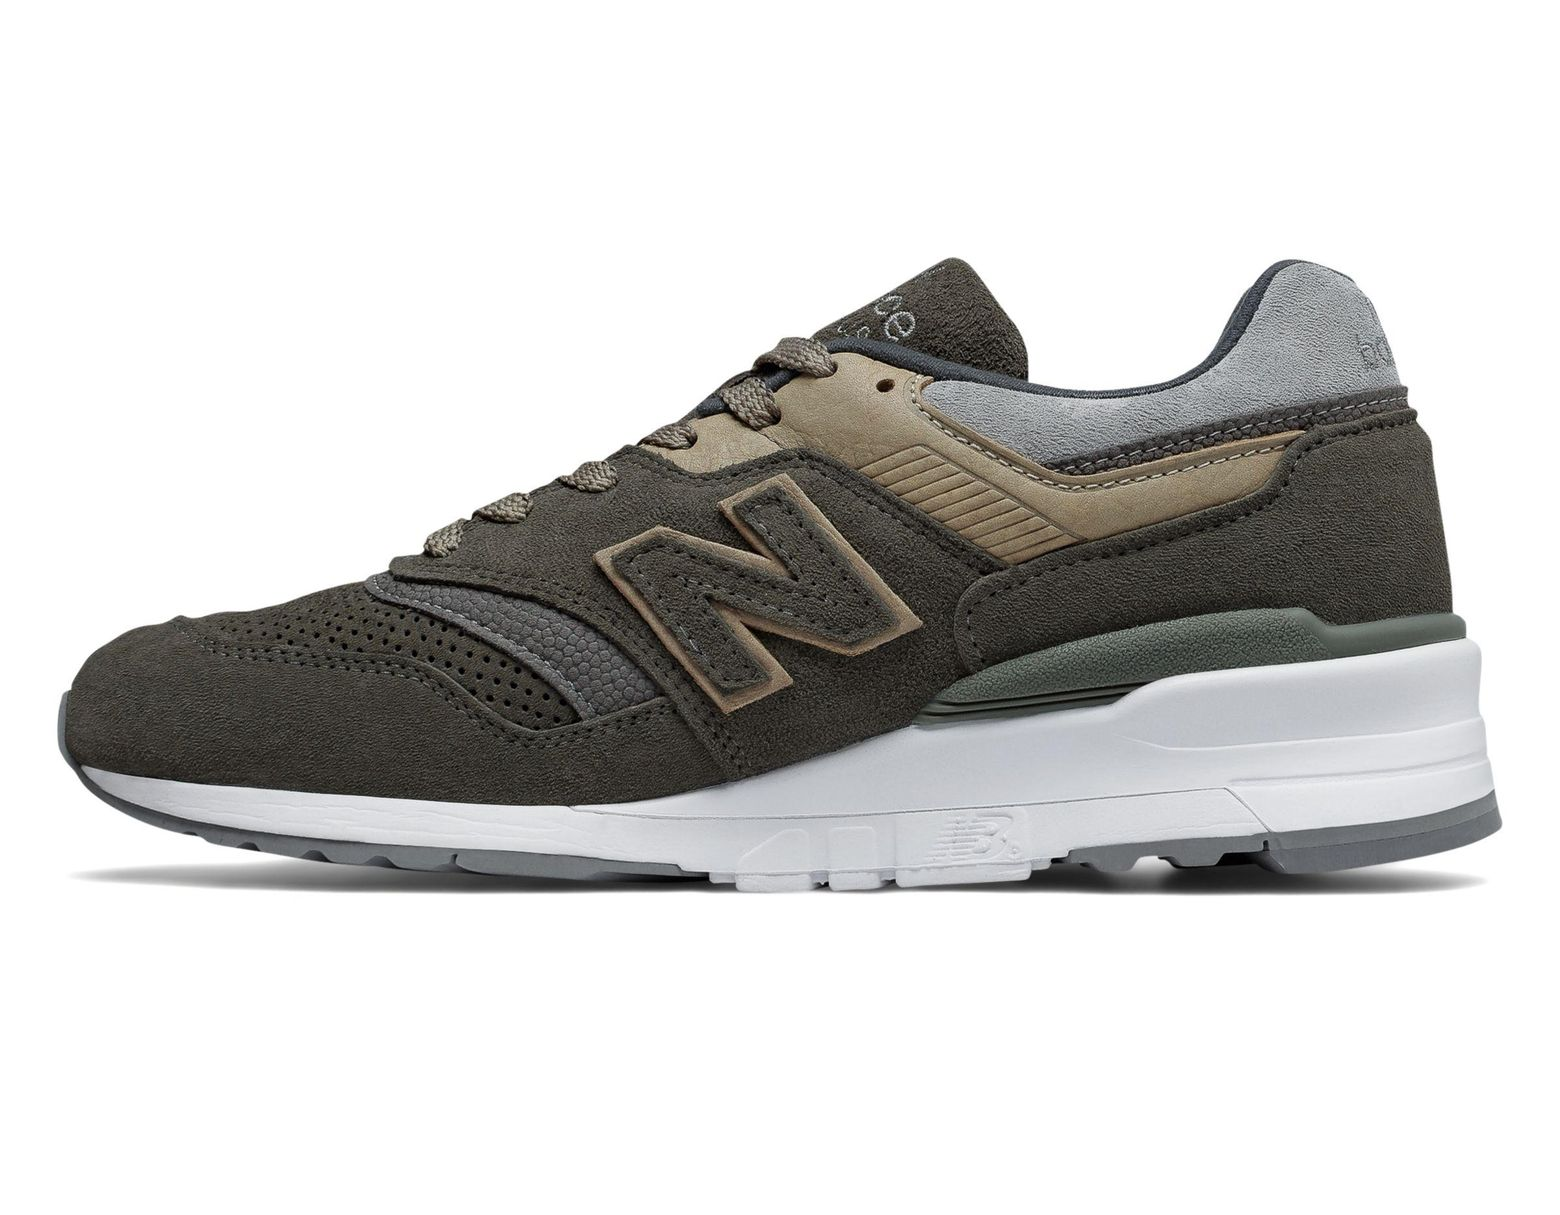 bfc154d65f0 New Balance New Balance 997 Winter Peaks Shoes in Gray for Men - Lyst